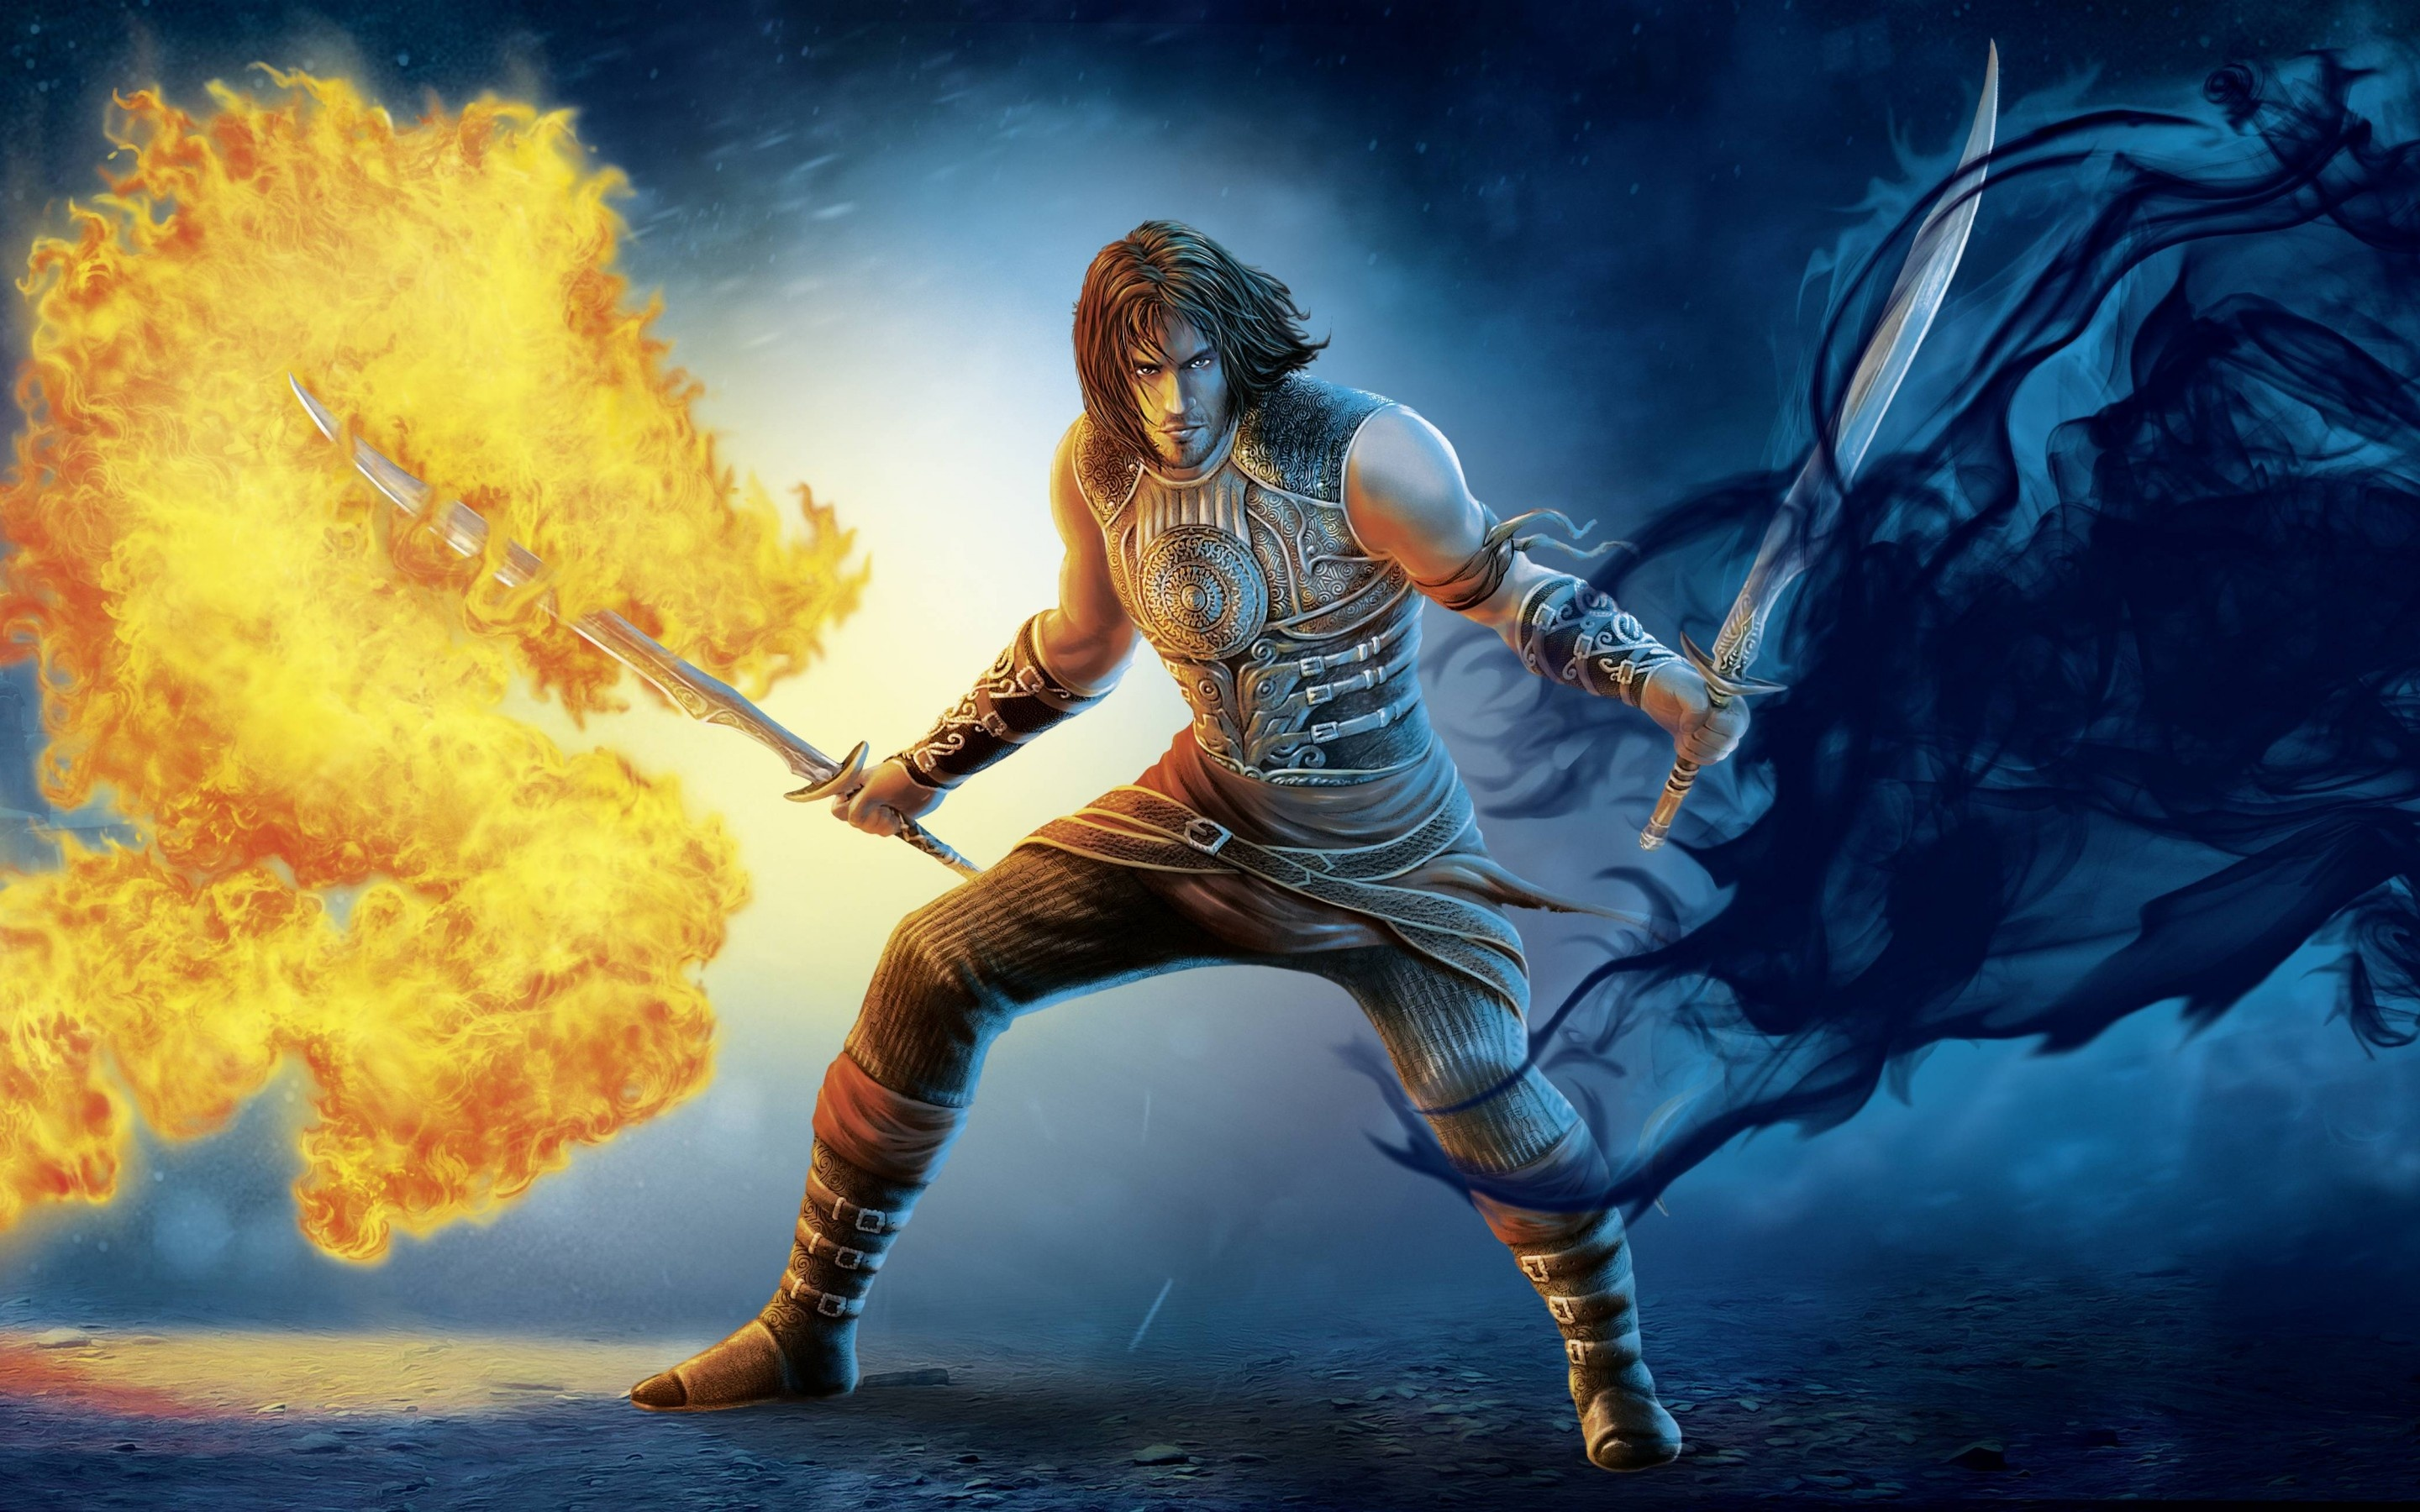 prince of persia 2 game free download